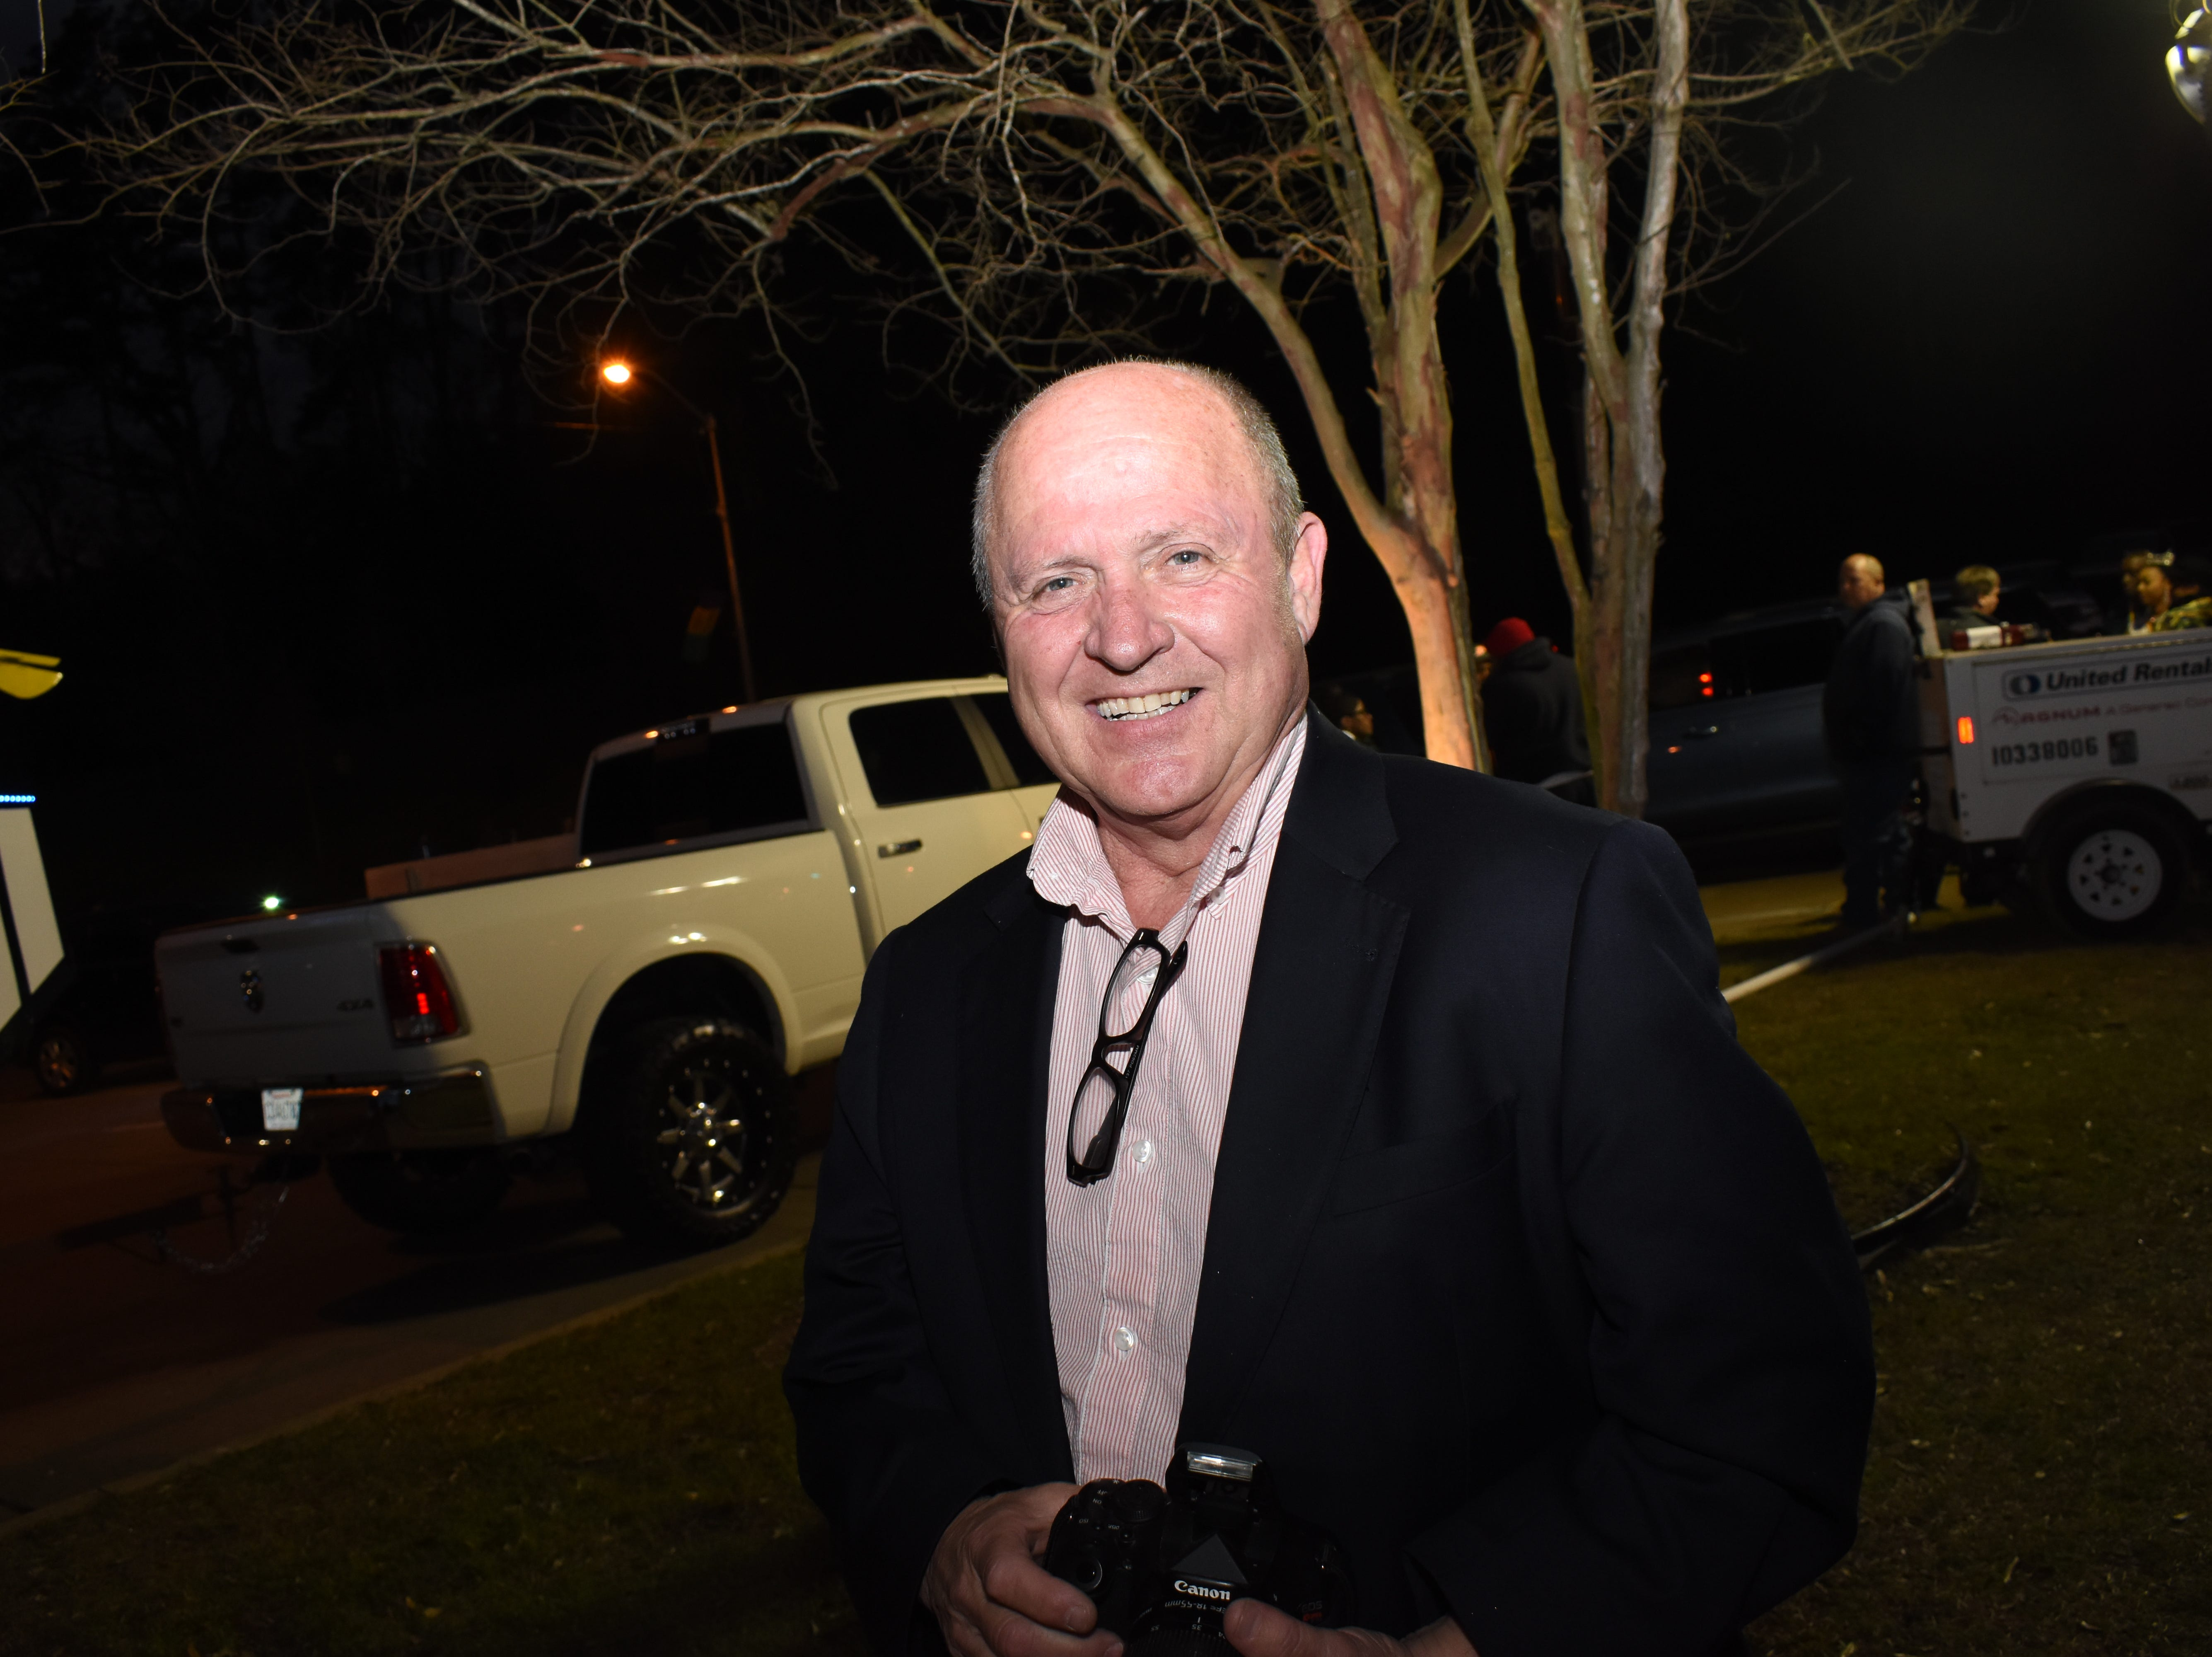 Pineville's  2019 Light the Night Parade was held Monday, Feb. 25, 2019. The parade started in Pineville near Louisiana College and ended in downtown Alexandria. The parade was postponed last Friday due to weather.